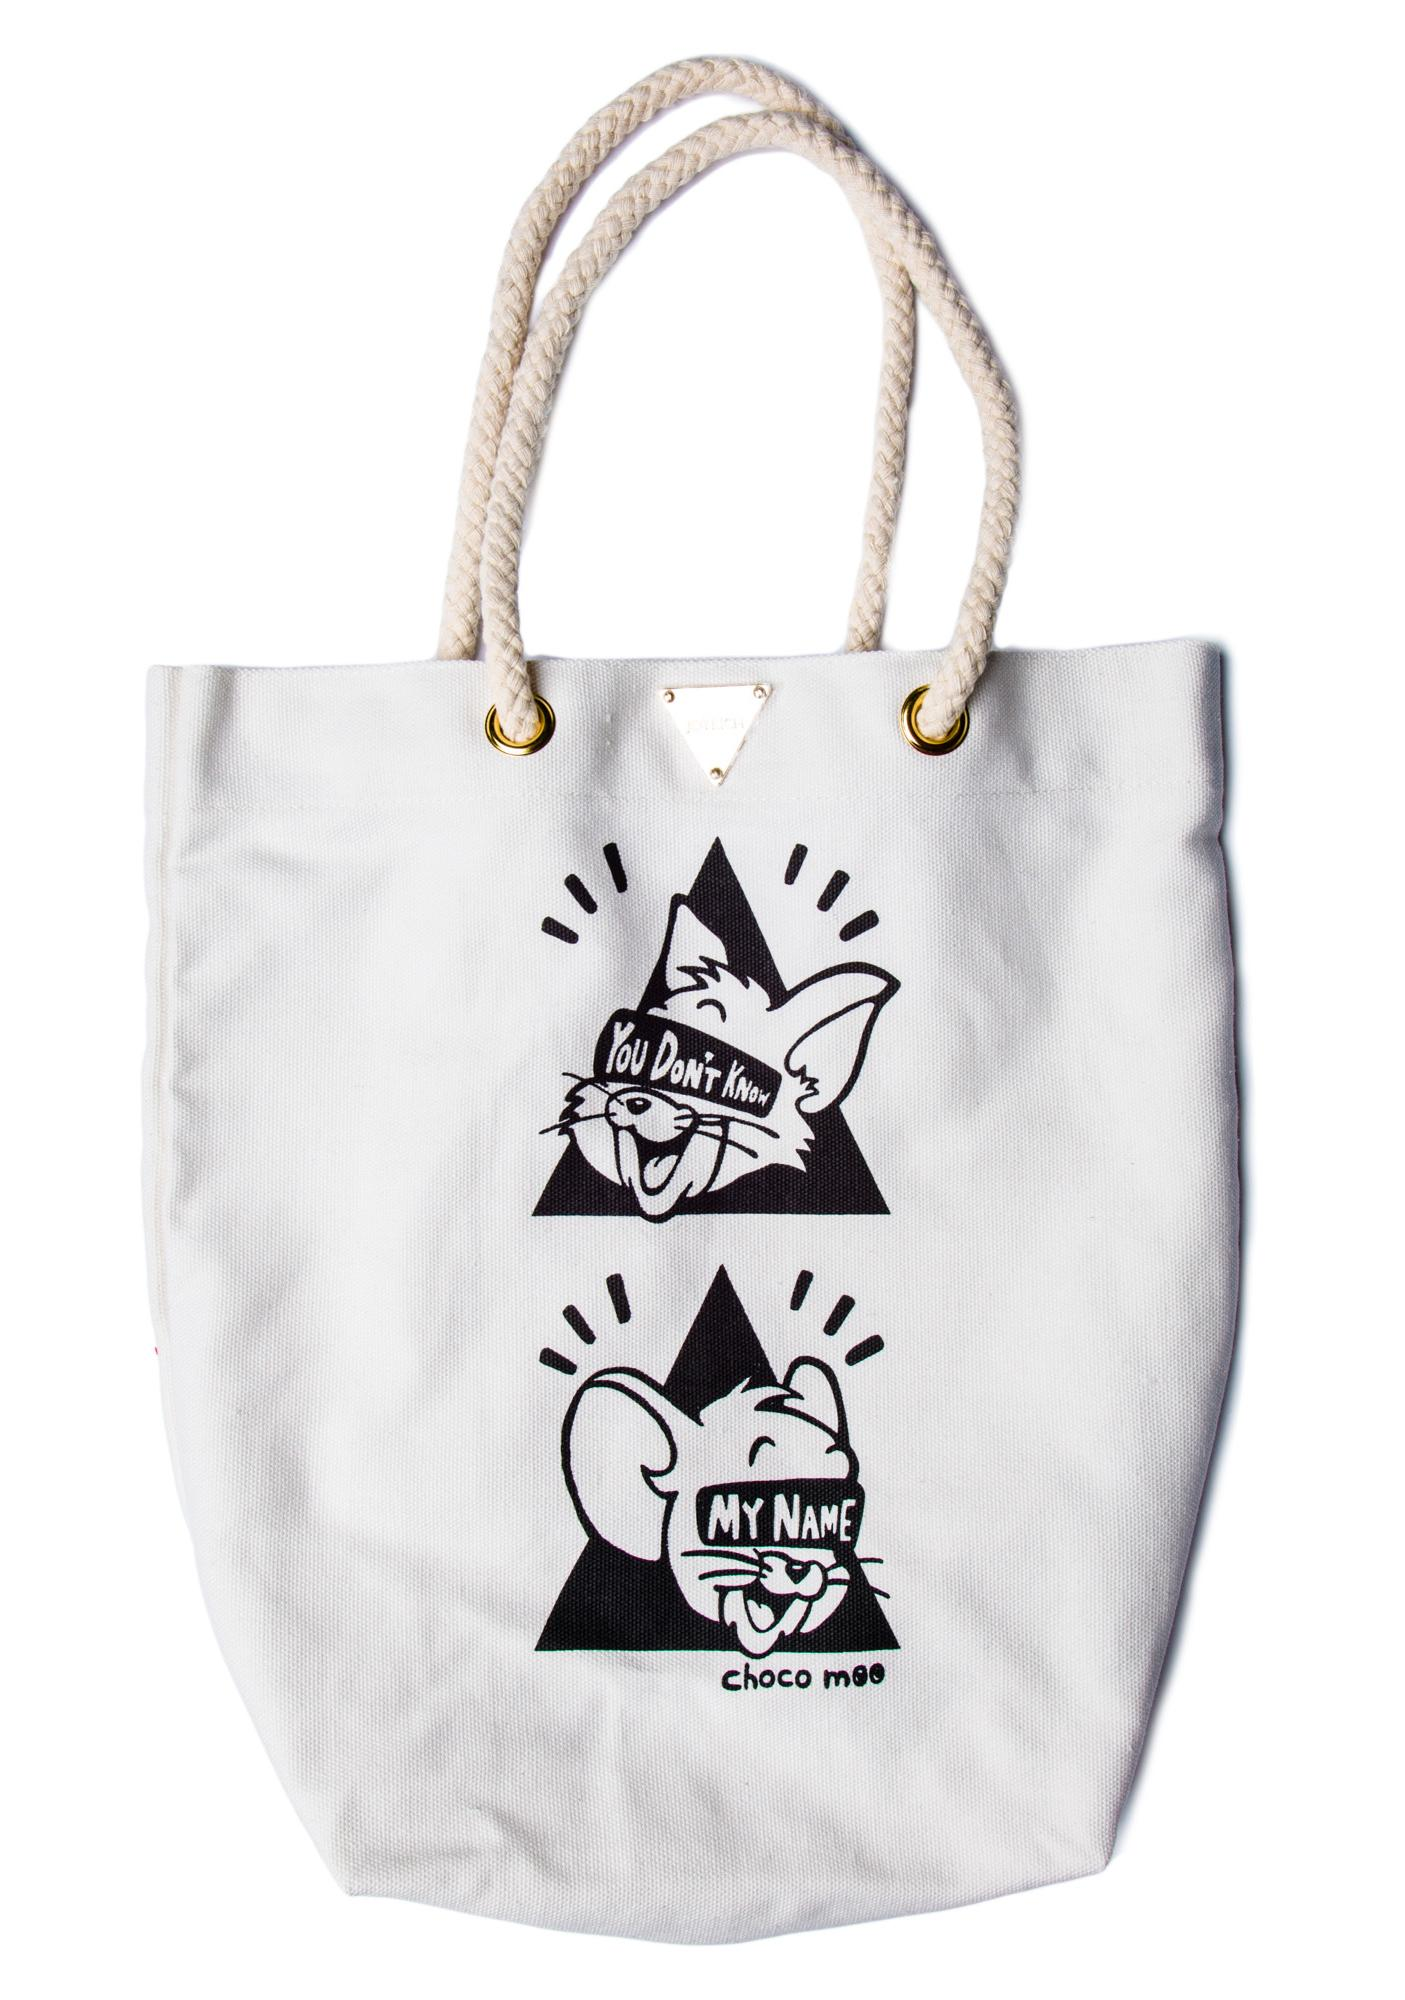 Joyrich You Don't Know My Name Tote Bag